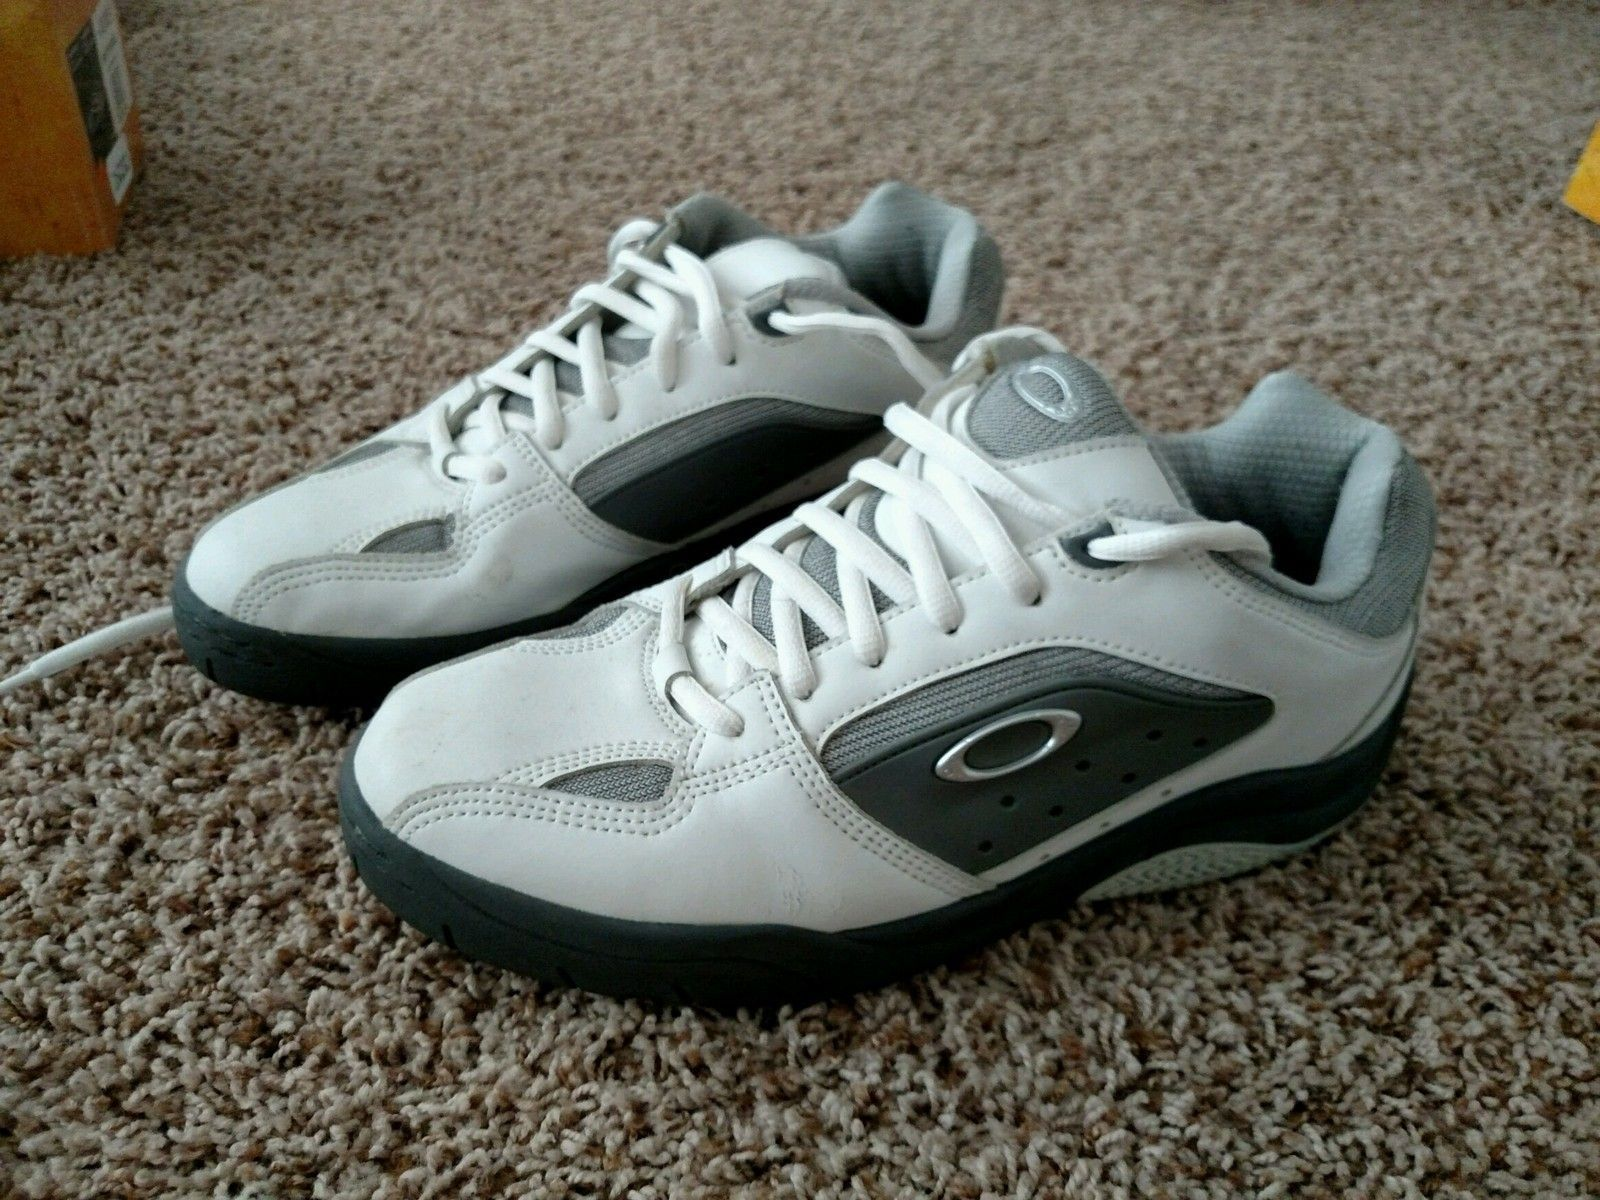 Oakley Size 12 Shoes White Leather - IMG_20150625_084219.jpg